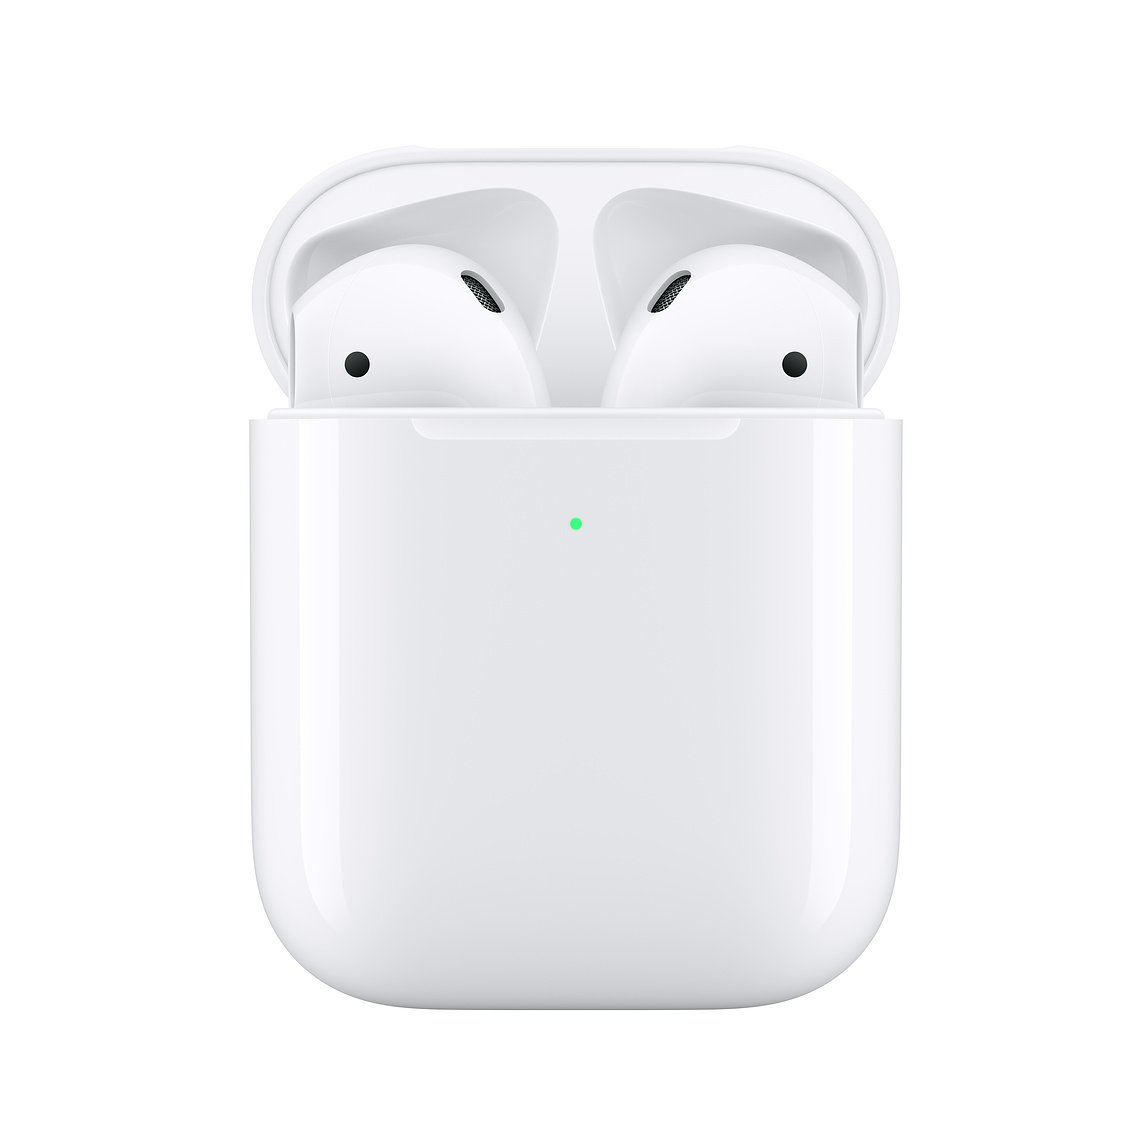 Buy AirPods with Wireless Charging Case - Apple